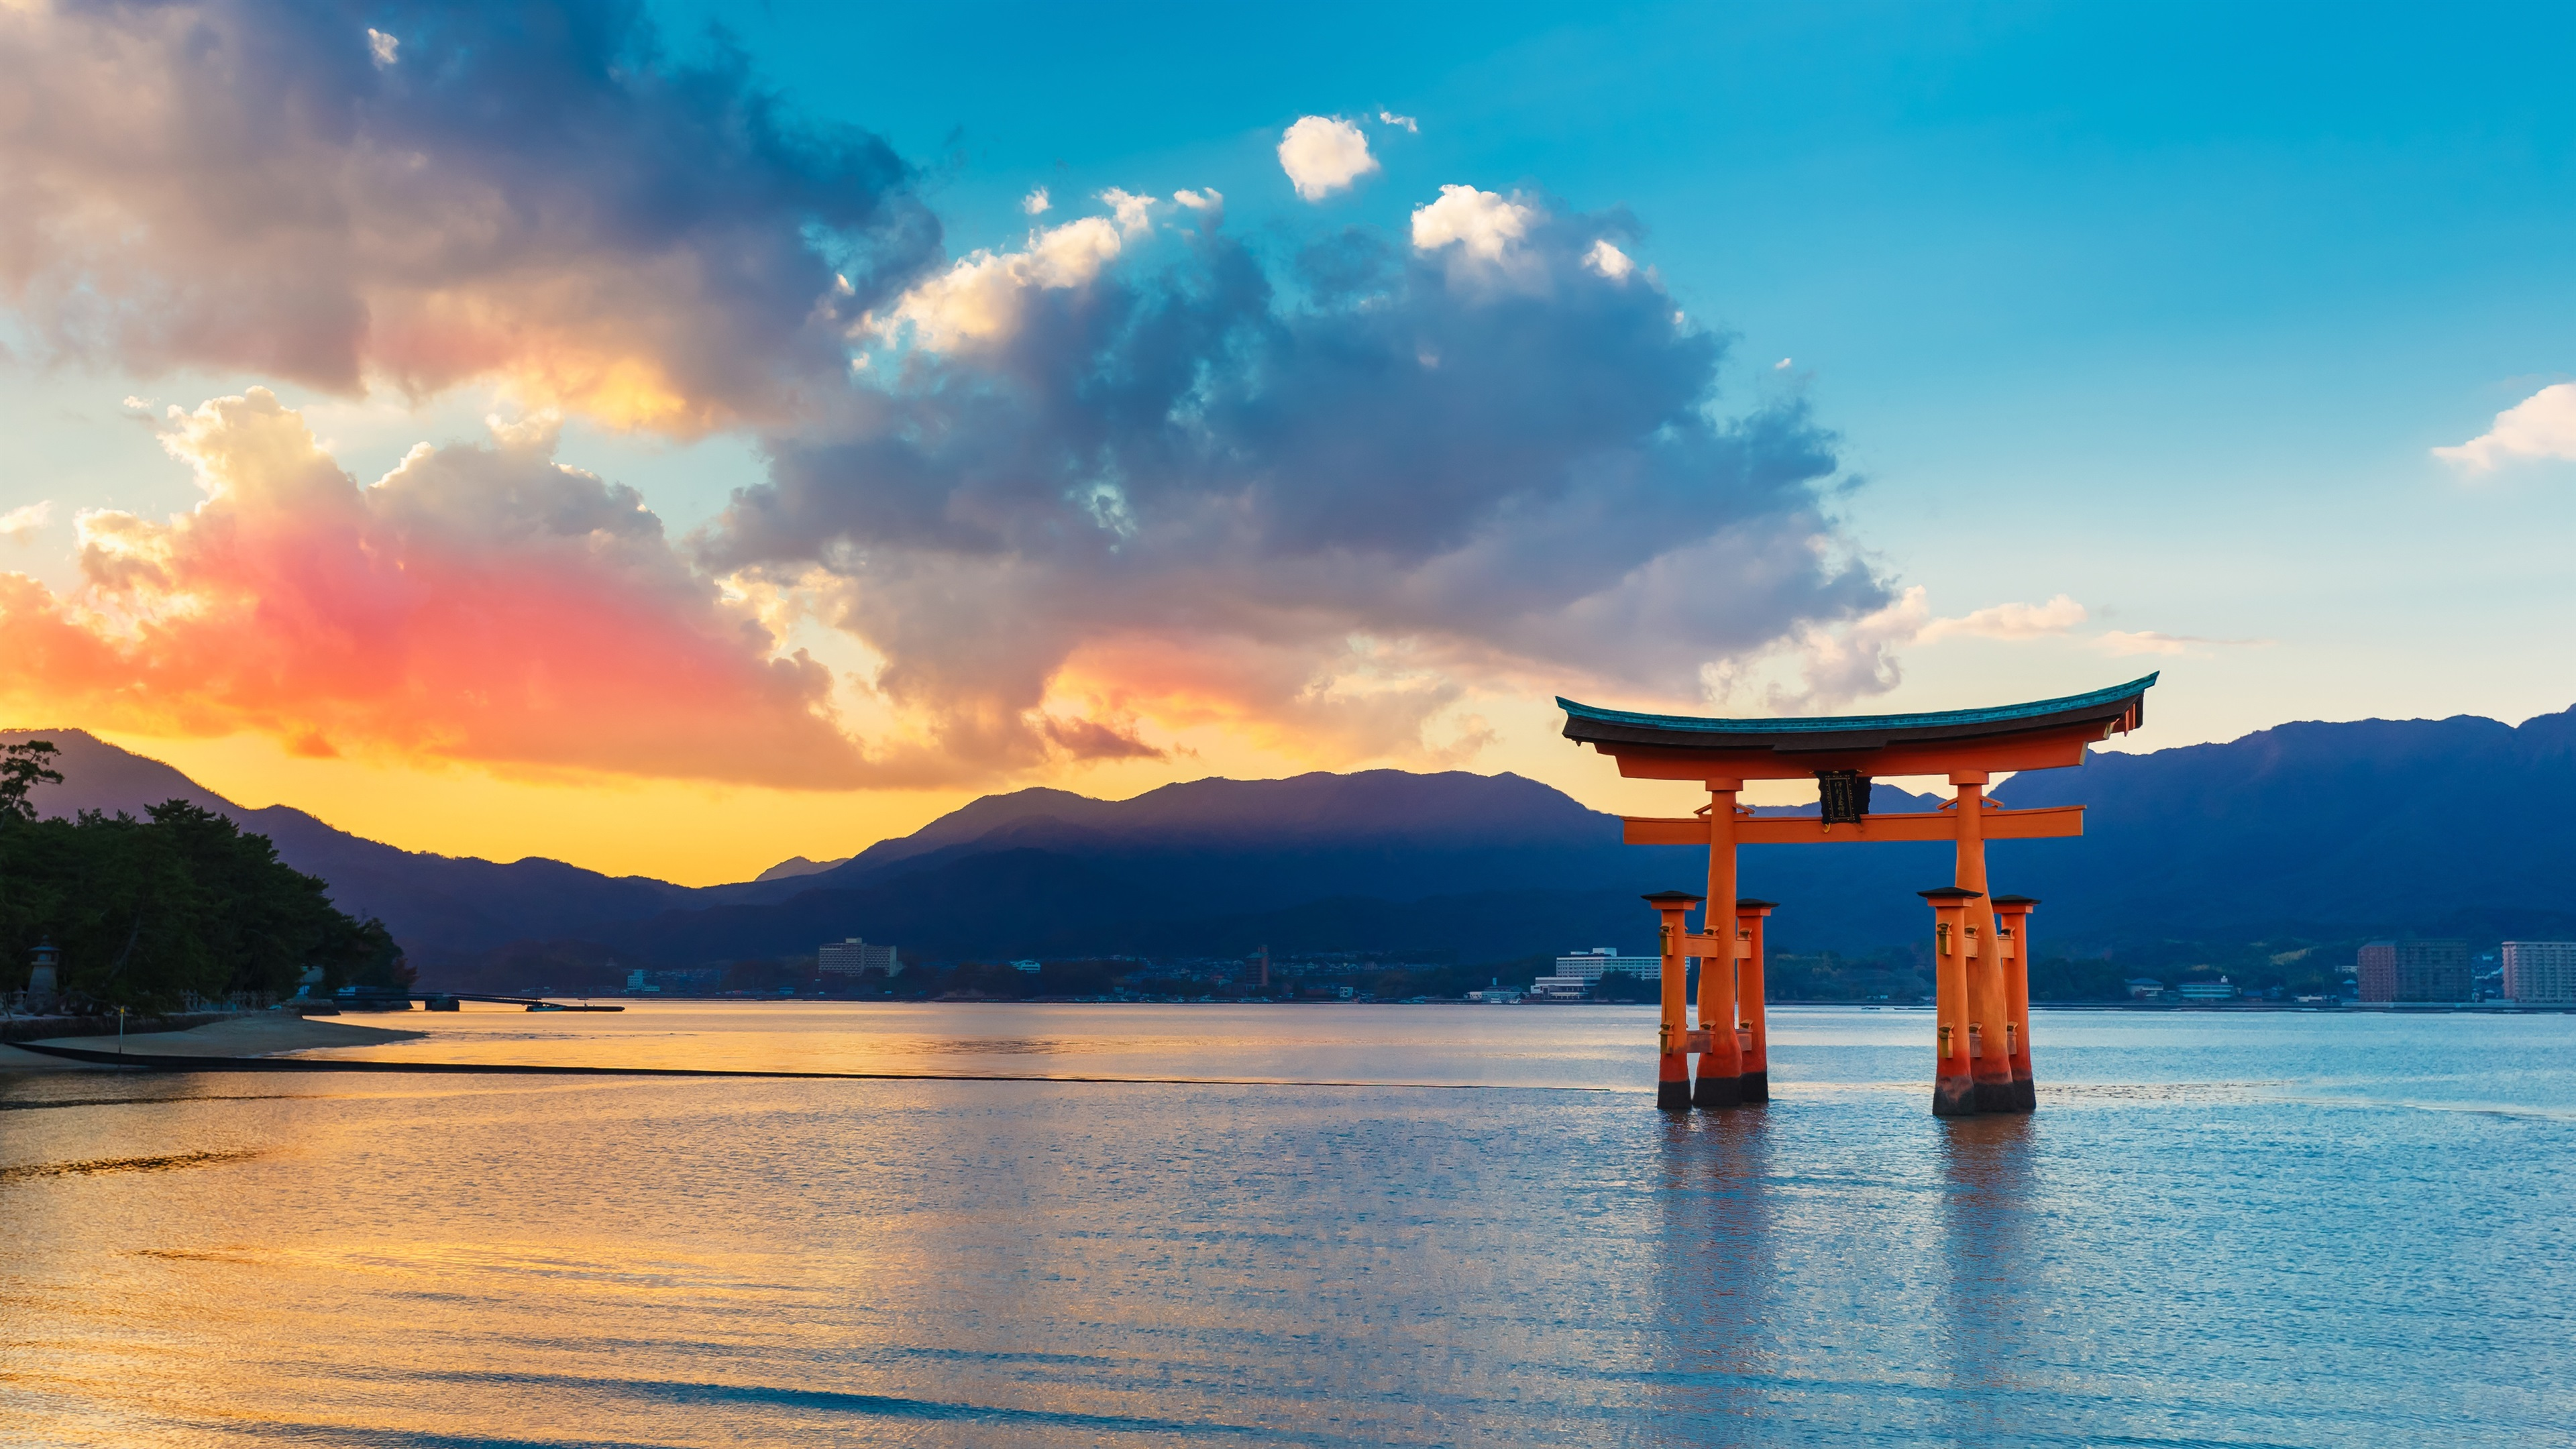 Wallpaper Torii Gate Sea Sunset Japan 3840x2160 Uhd 4k Picture Image